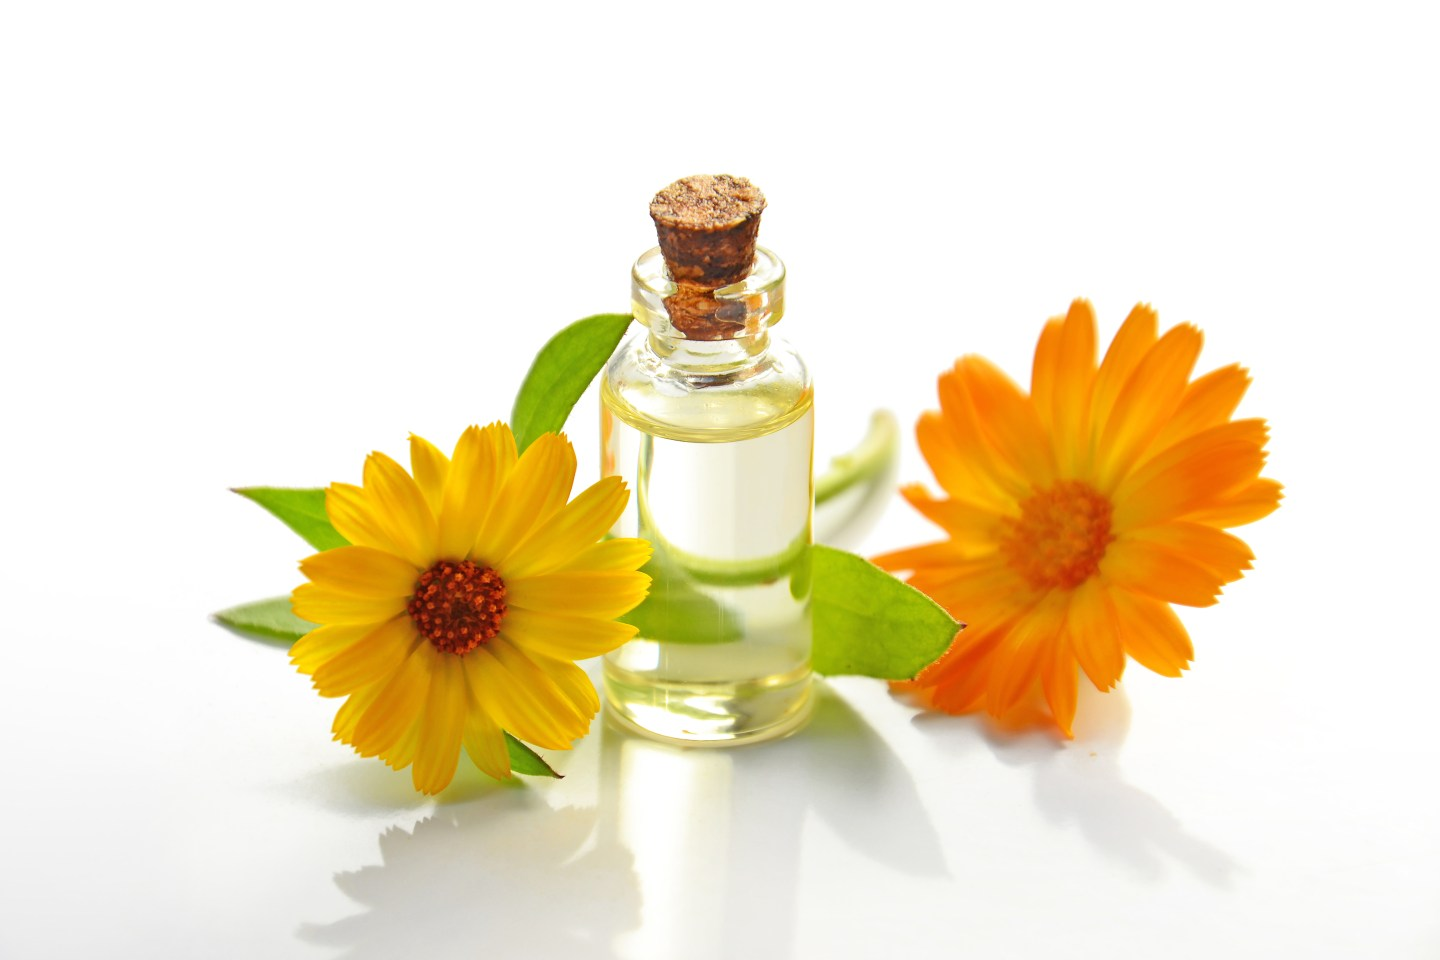 oil, ocm, how to cleanse skin properly